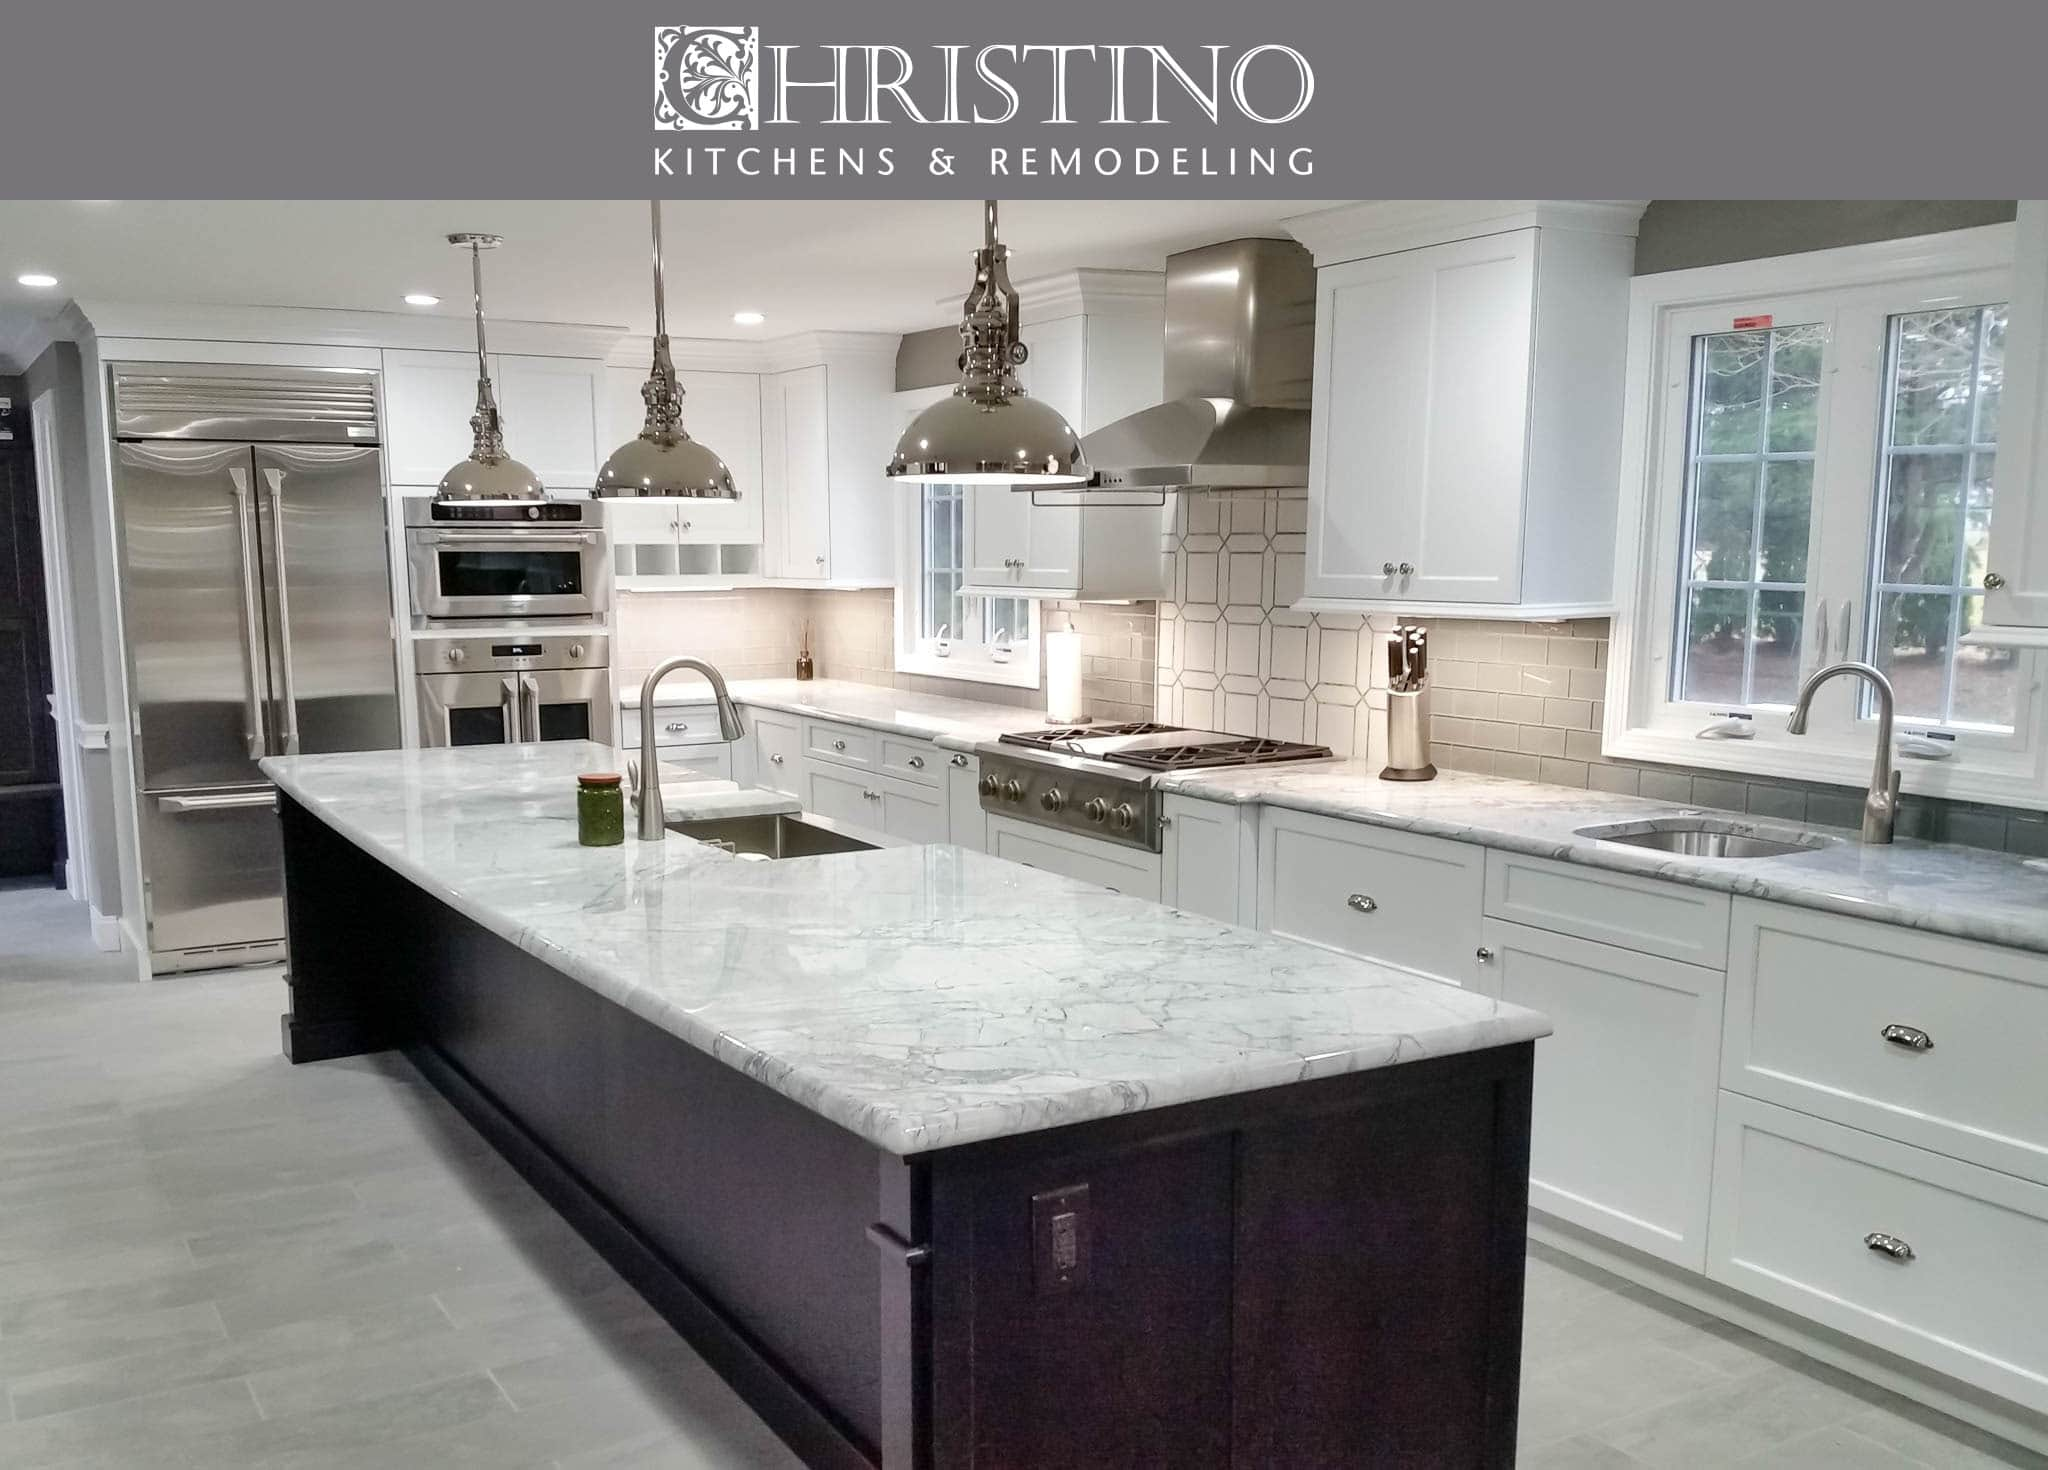 Top 5 Kitchen Design Trends In CT For 2020 | Christino ...